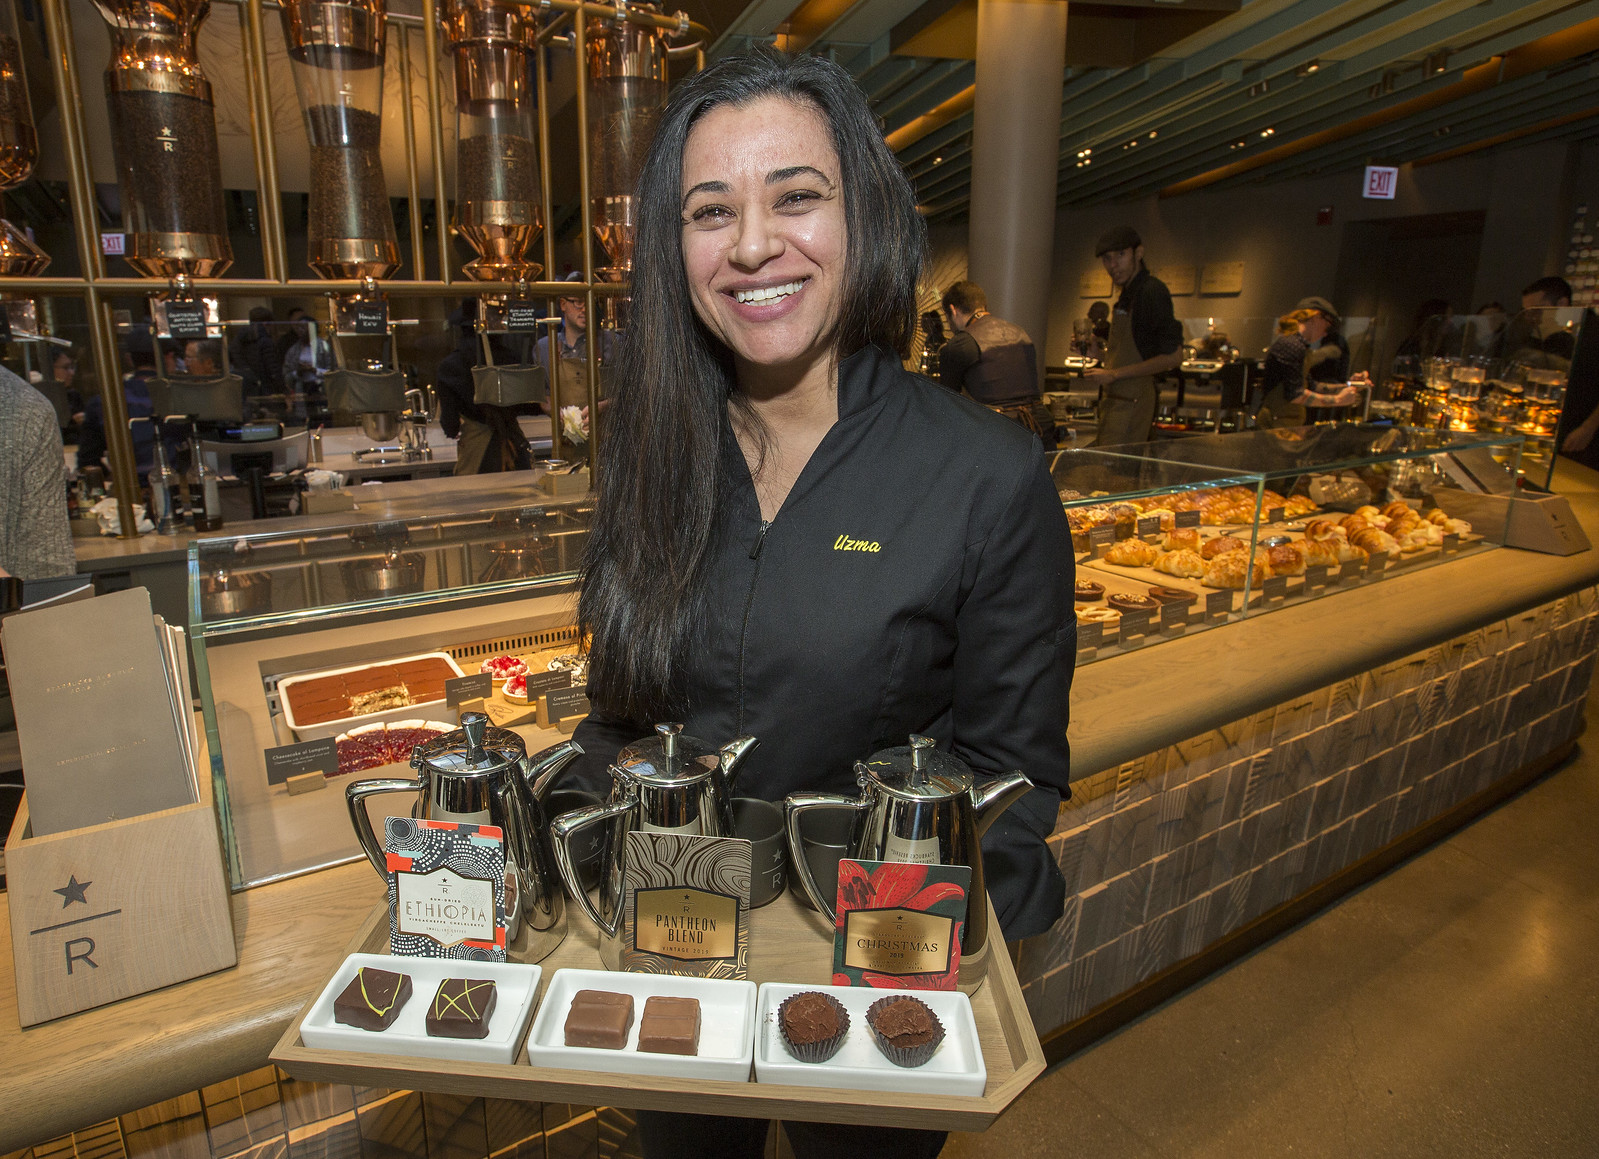 What to Eat and Drink at the World's Largest Starbucks